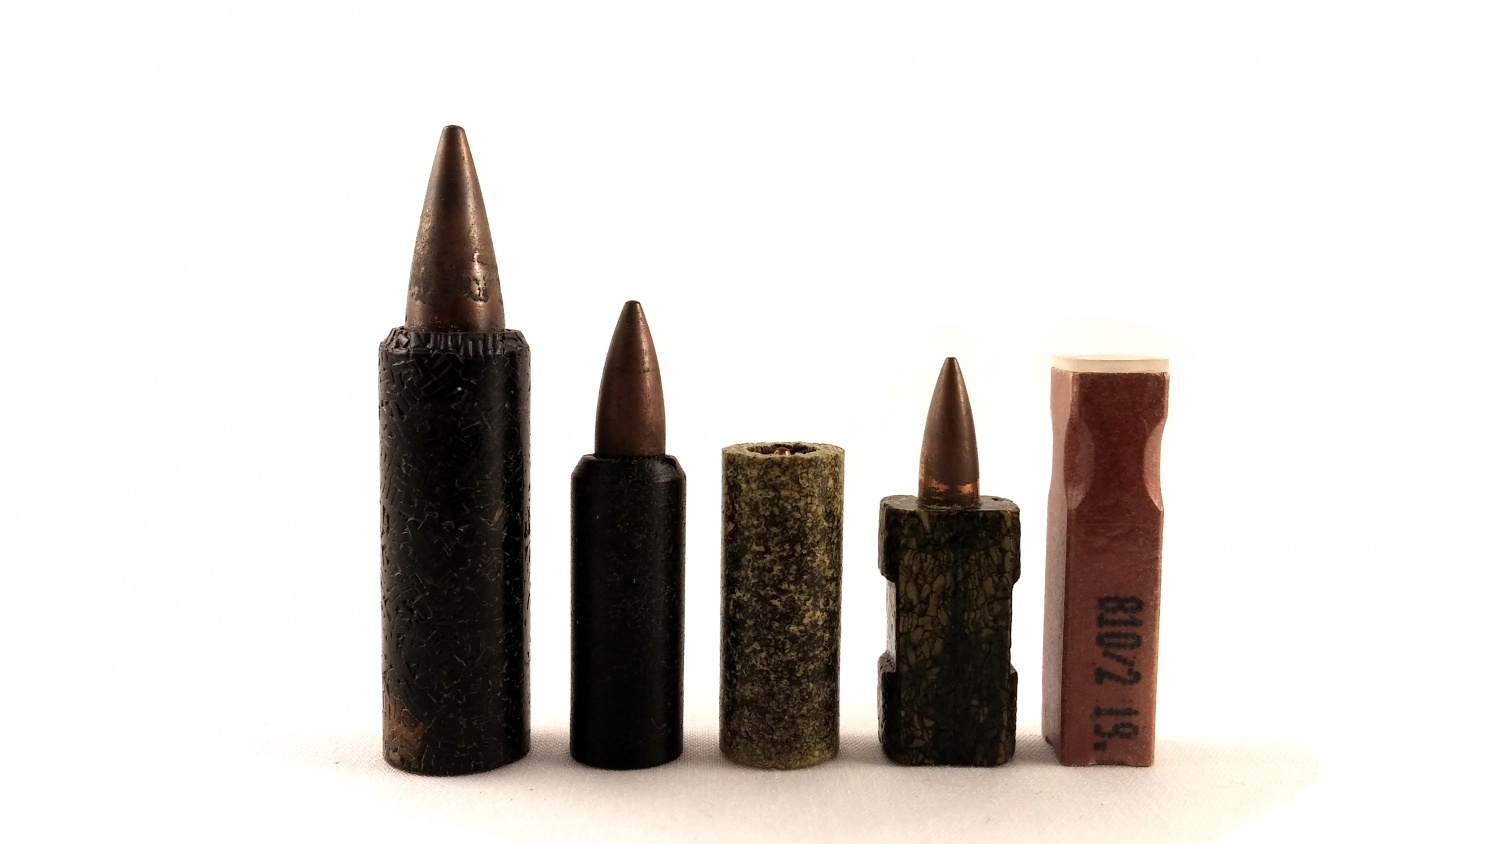 Caseless rounds, left to right: 7.62x34mm Frankford Arsenal caseless, 5.56x24mm FA caseless, 5.56x25mm Hercules caseless, 4.7x21mm H&K/DAG early caseless, 4.7x33mm HK/DAG G11 caseless.